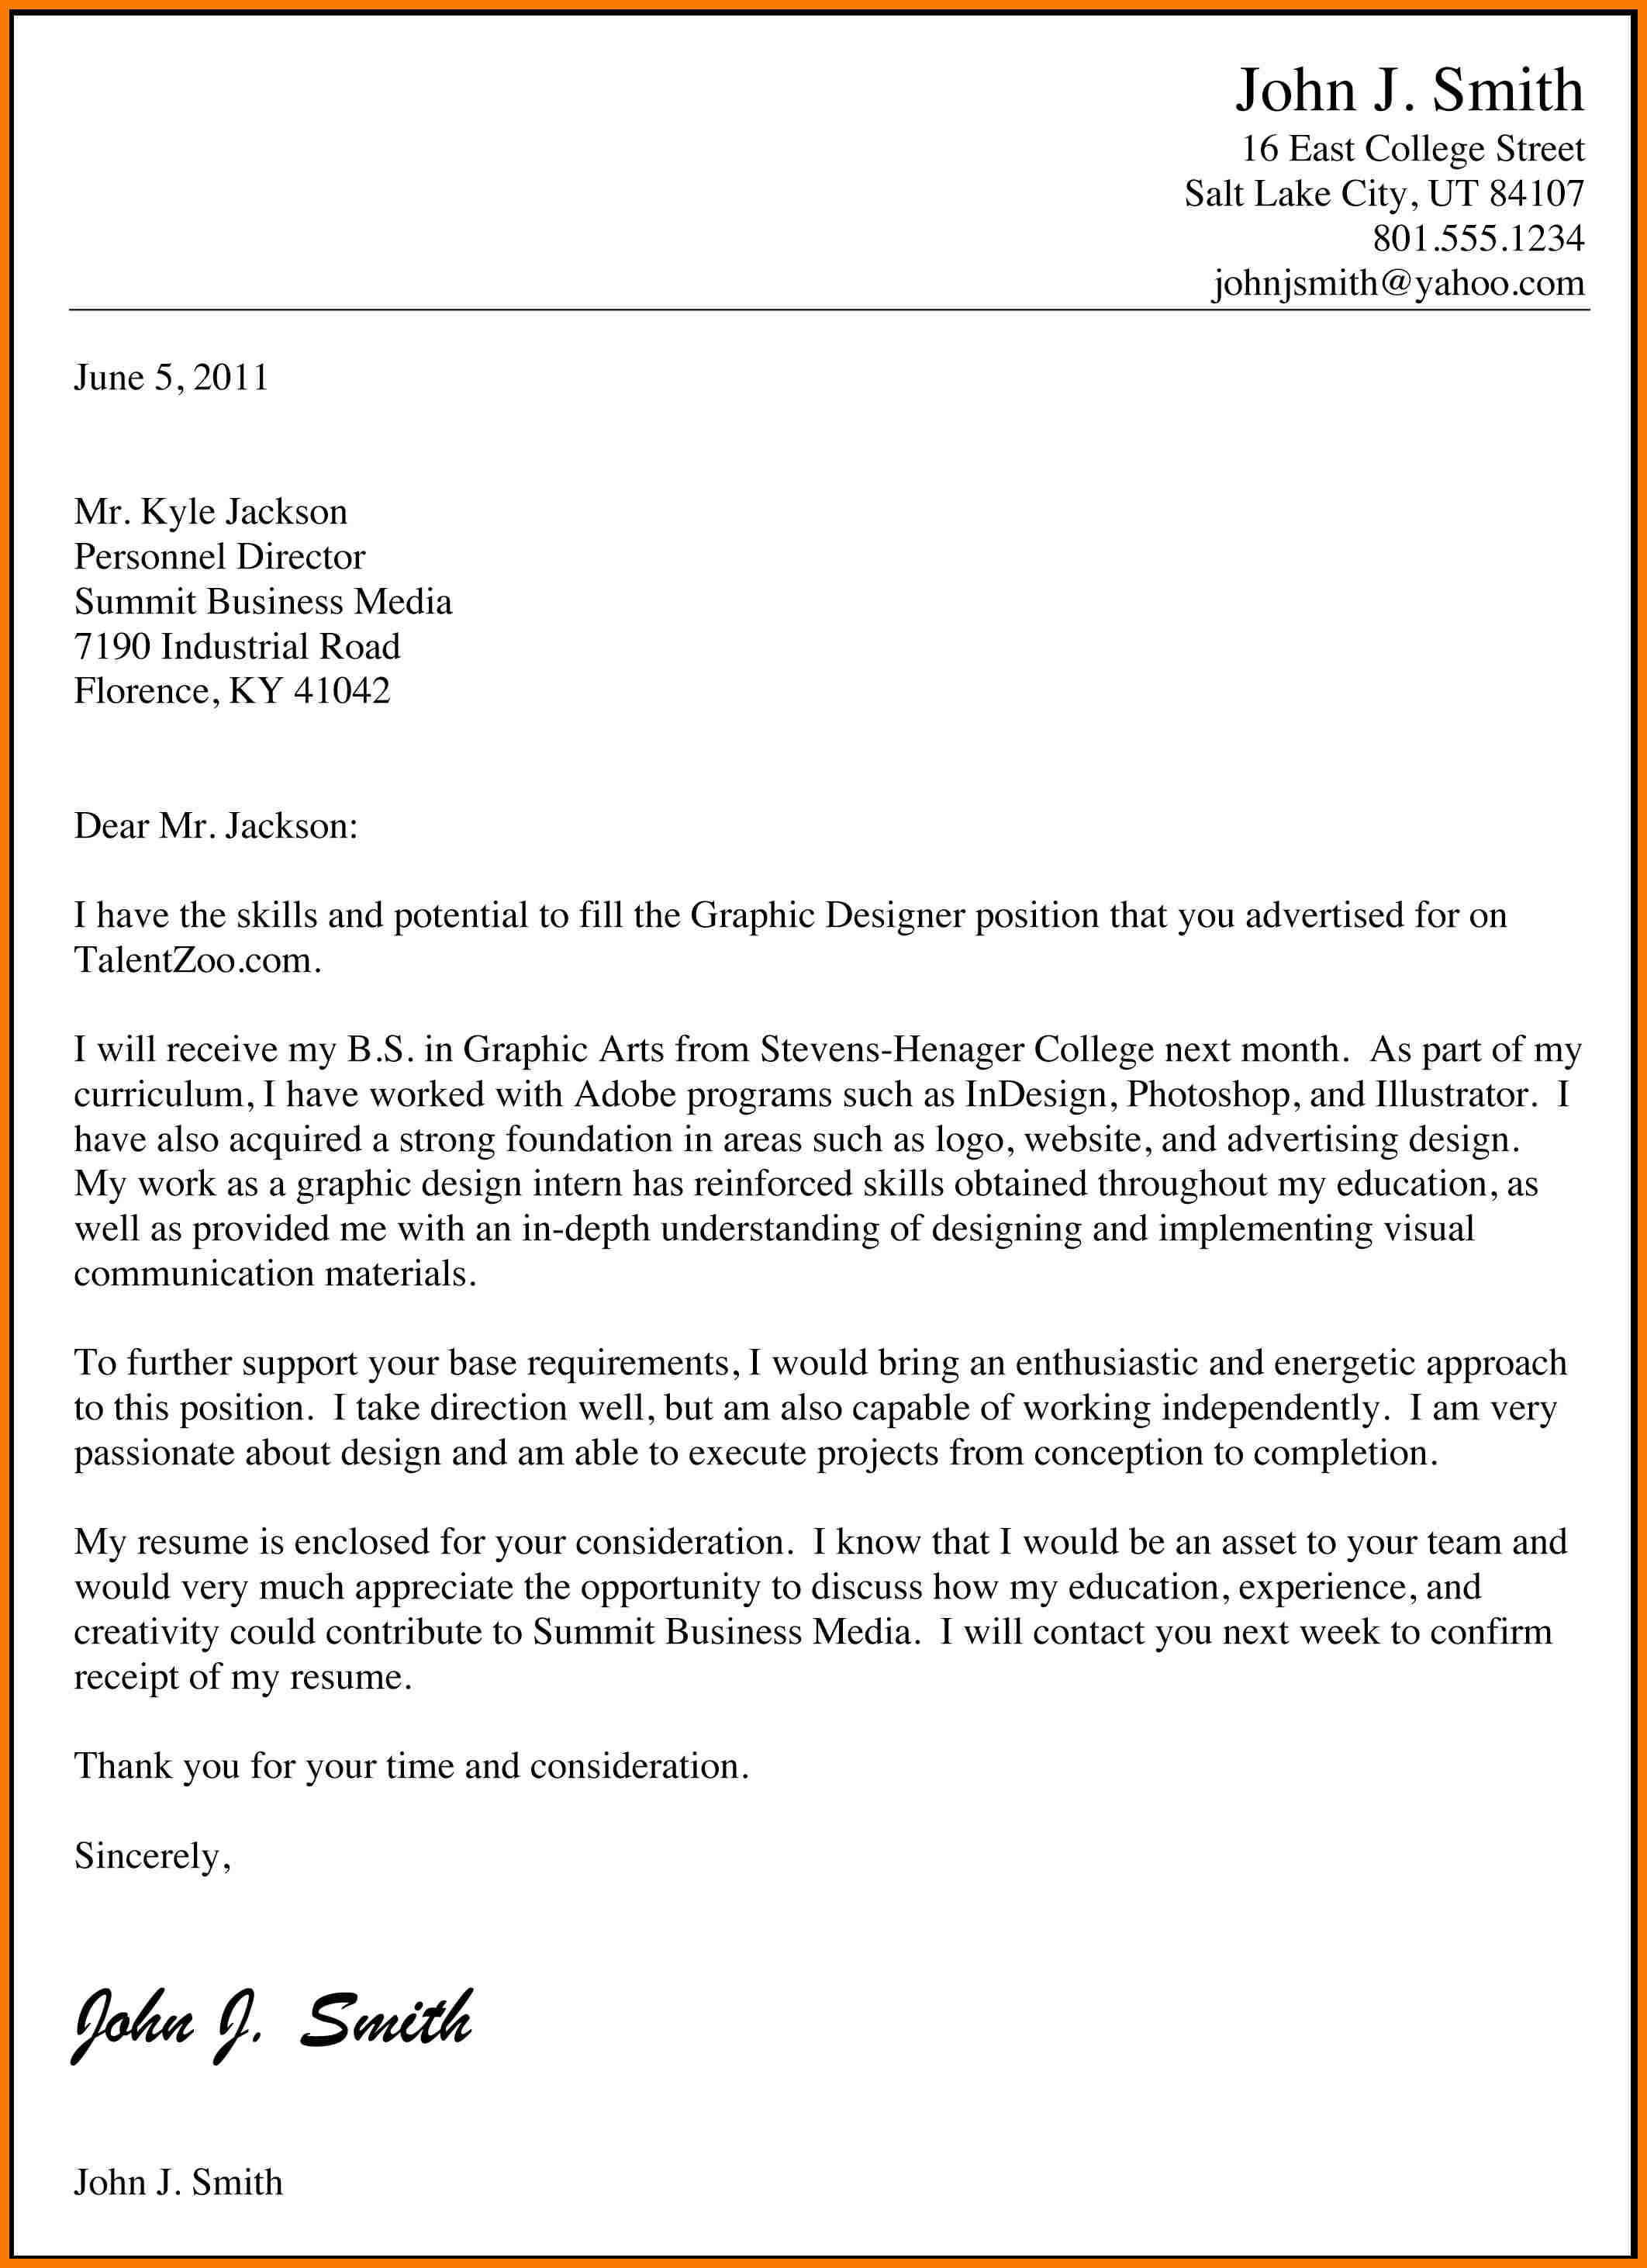 examples of cover letter for job application in business